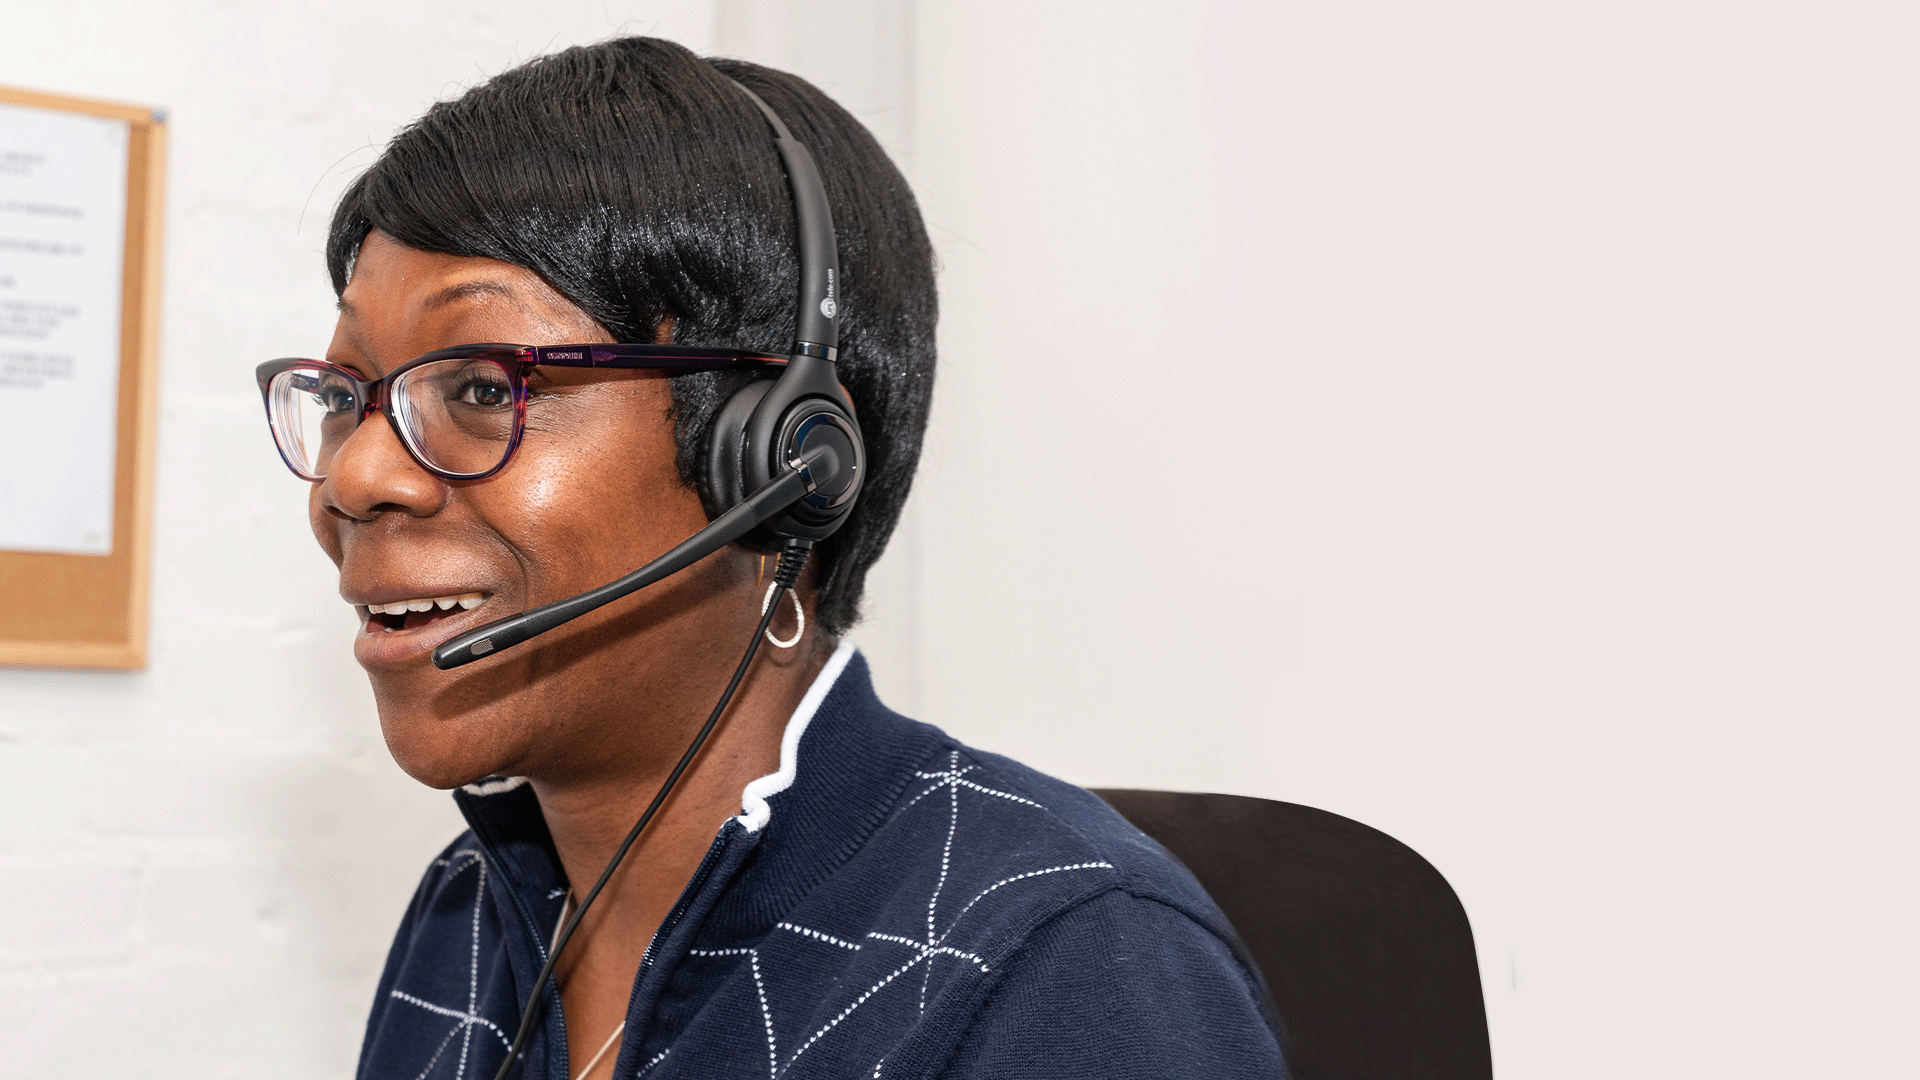 Dola sitting in an office, wearing a headset and smiling